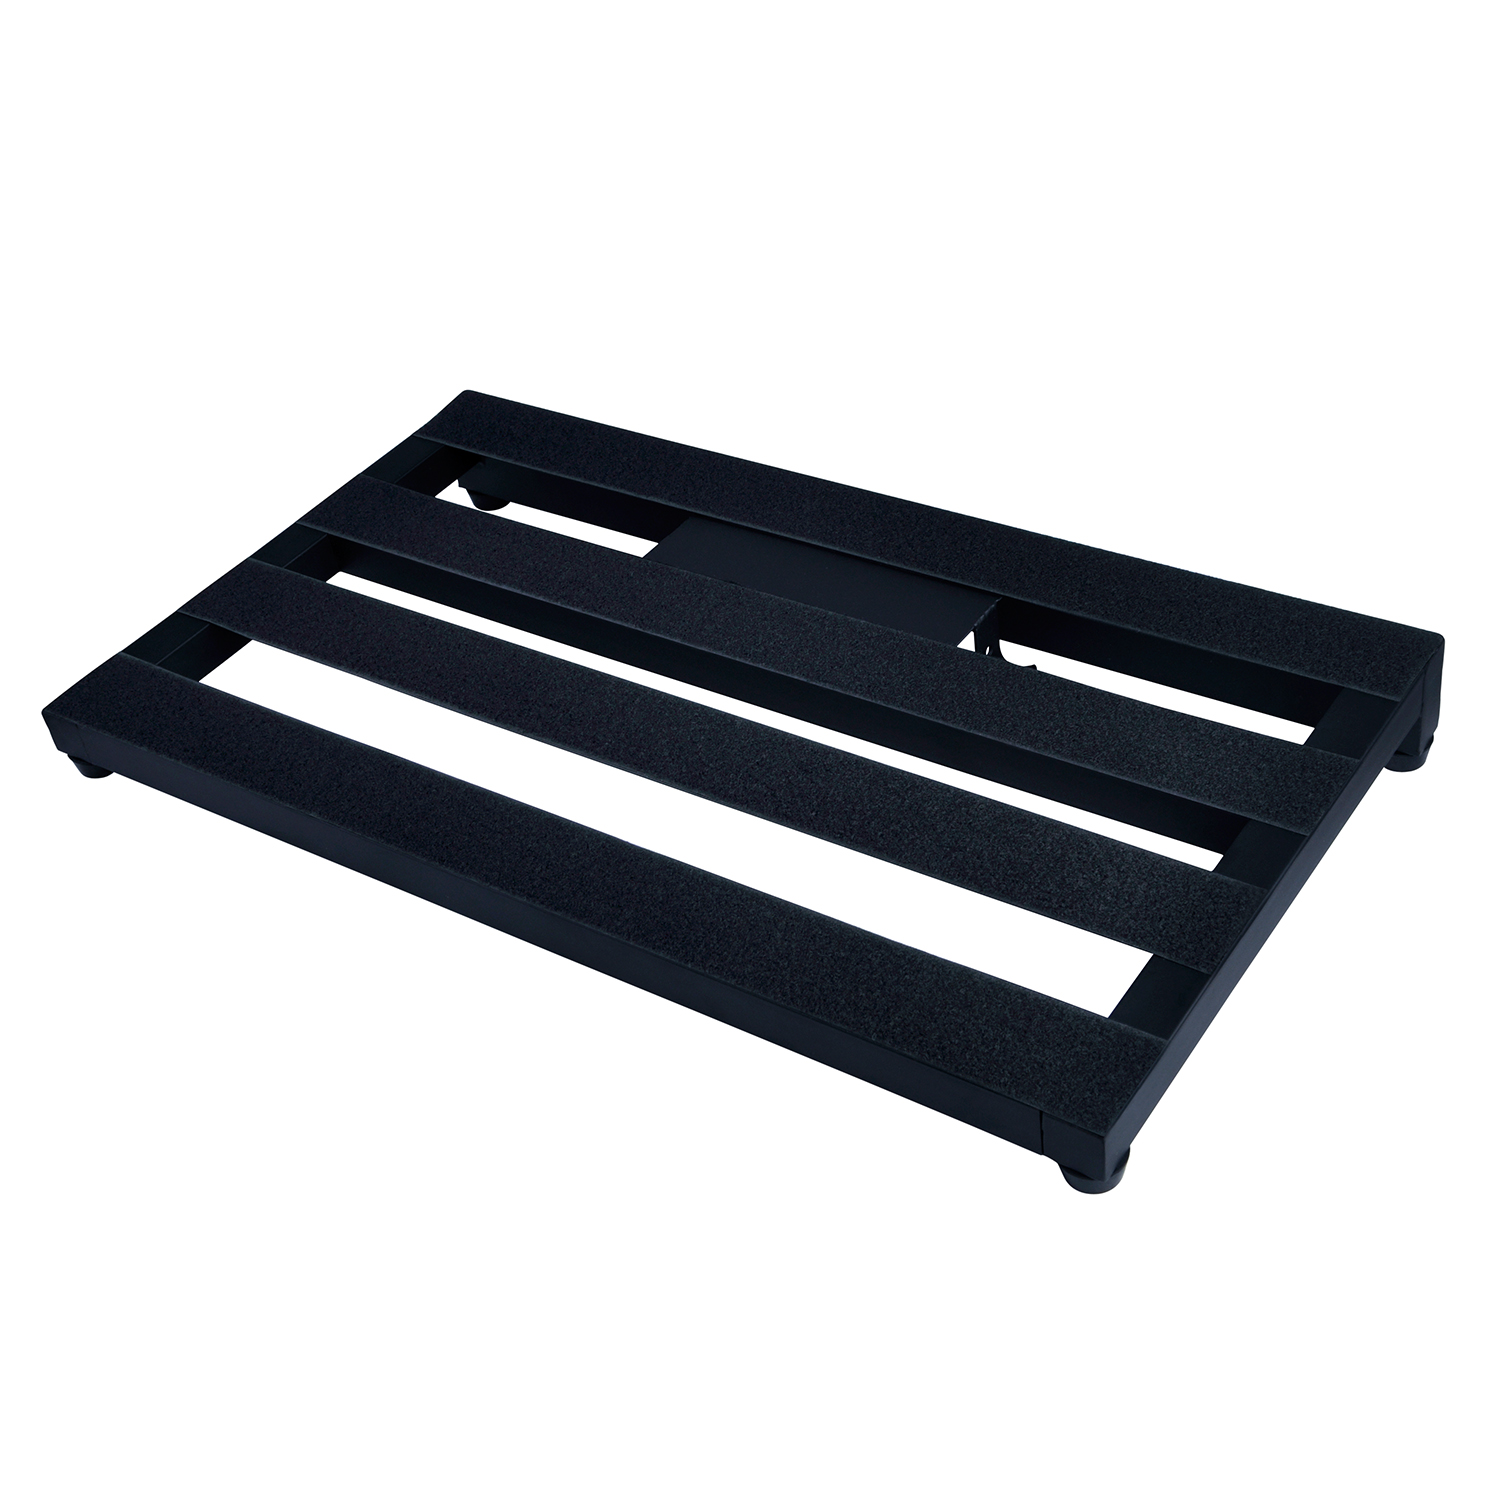 online buy wholesale pedal board from china pedal board wholesalers. Black Bedroom Furniture Sets. Home Design Ideas